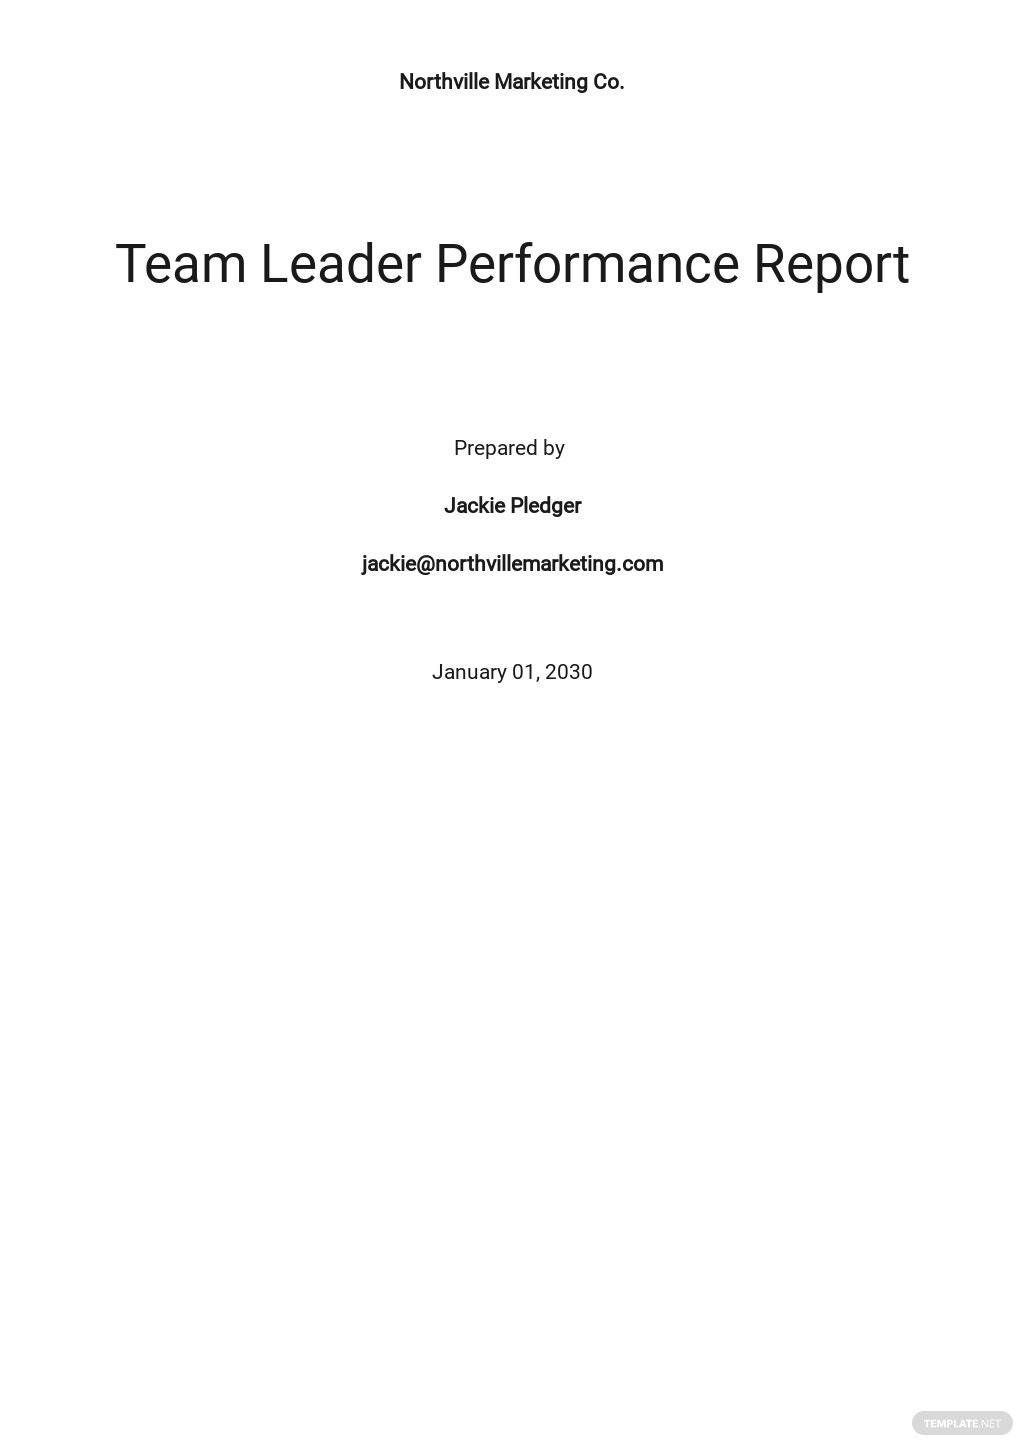 Performance Report Template